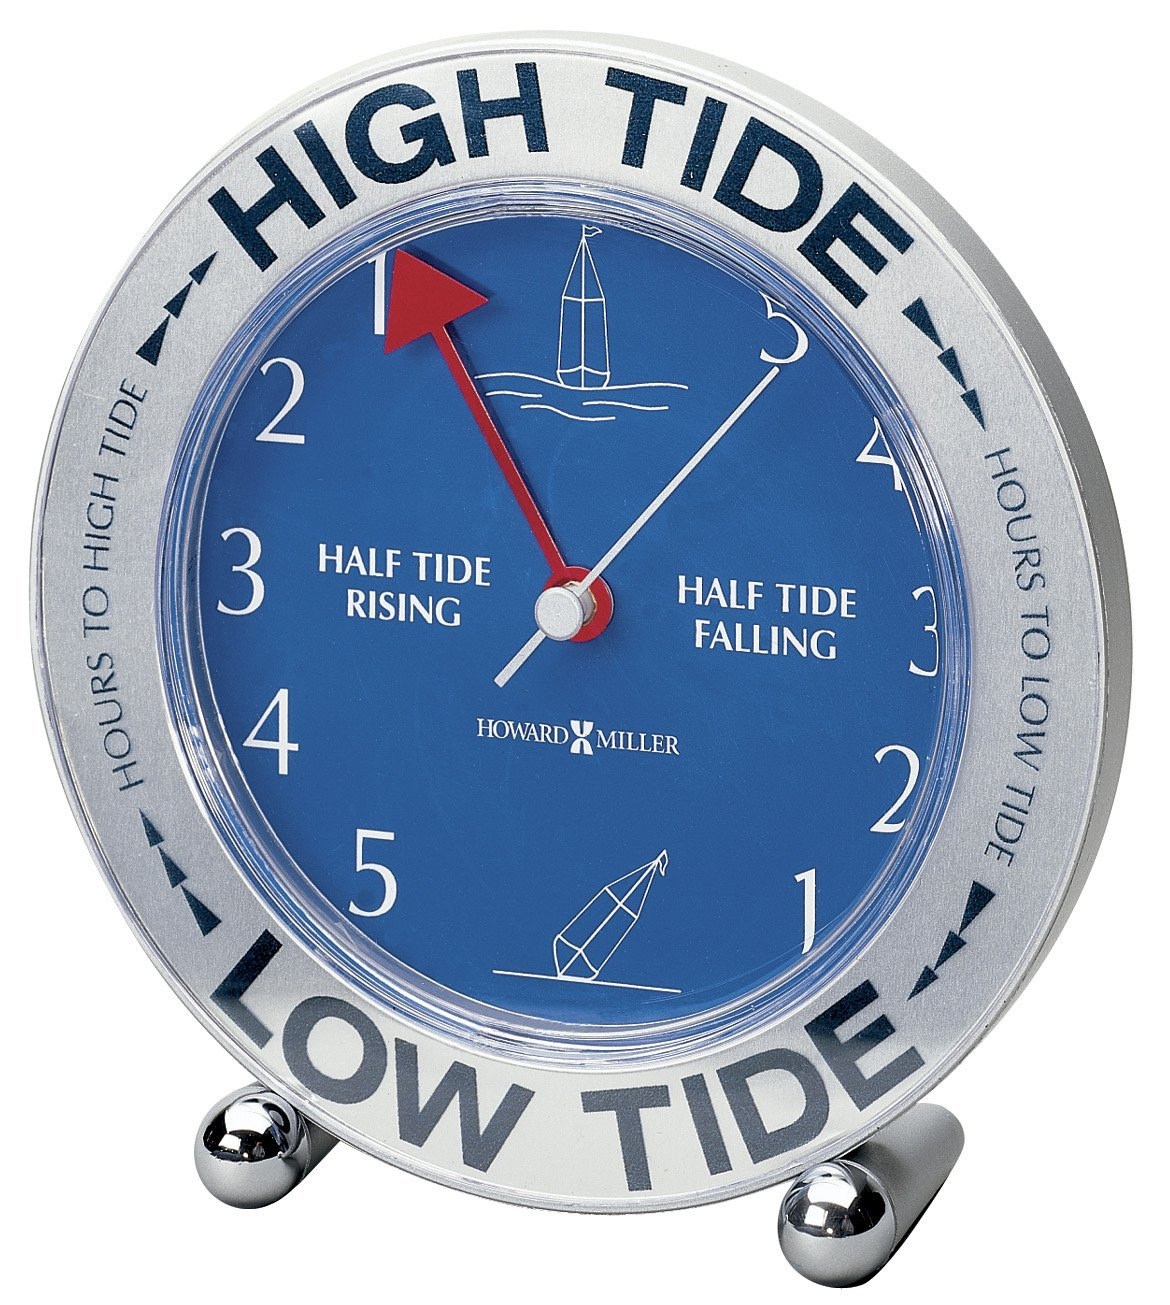 645-527 Tide Mate III Weather & Maritime Table Clock by, Features colorful digital graphics for high and low tide, with... by